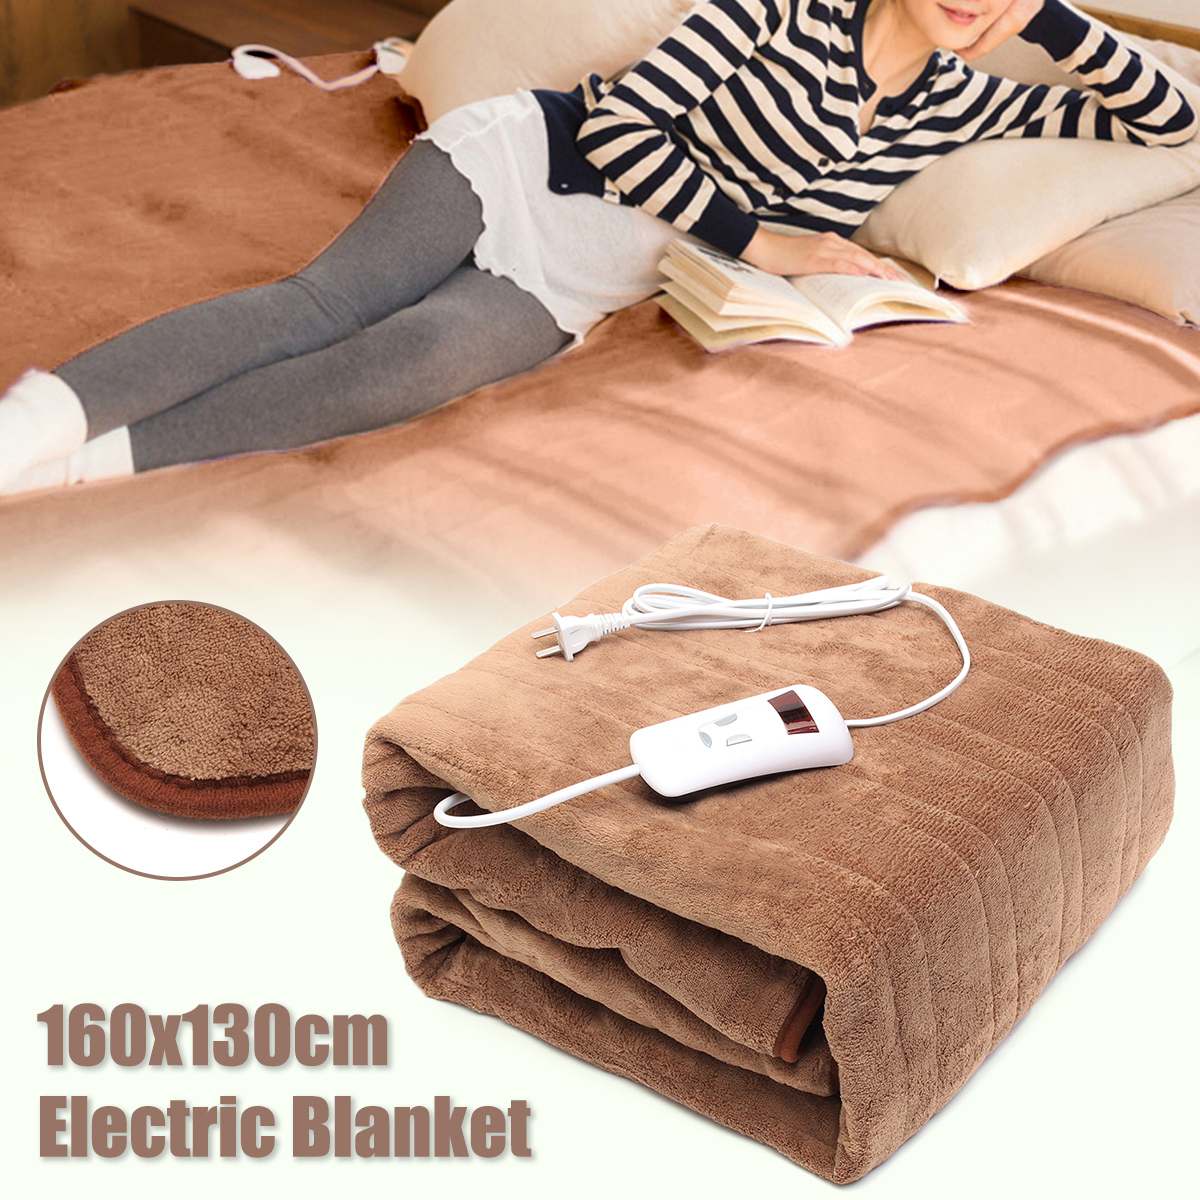 160x130cm Waterproof Electric Blanlet Double 220V Electric Heated Blanket Mat Single-control Dormitory Bedroom Heating Carpet